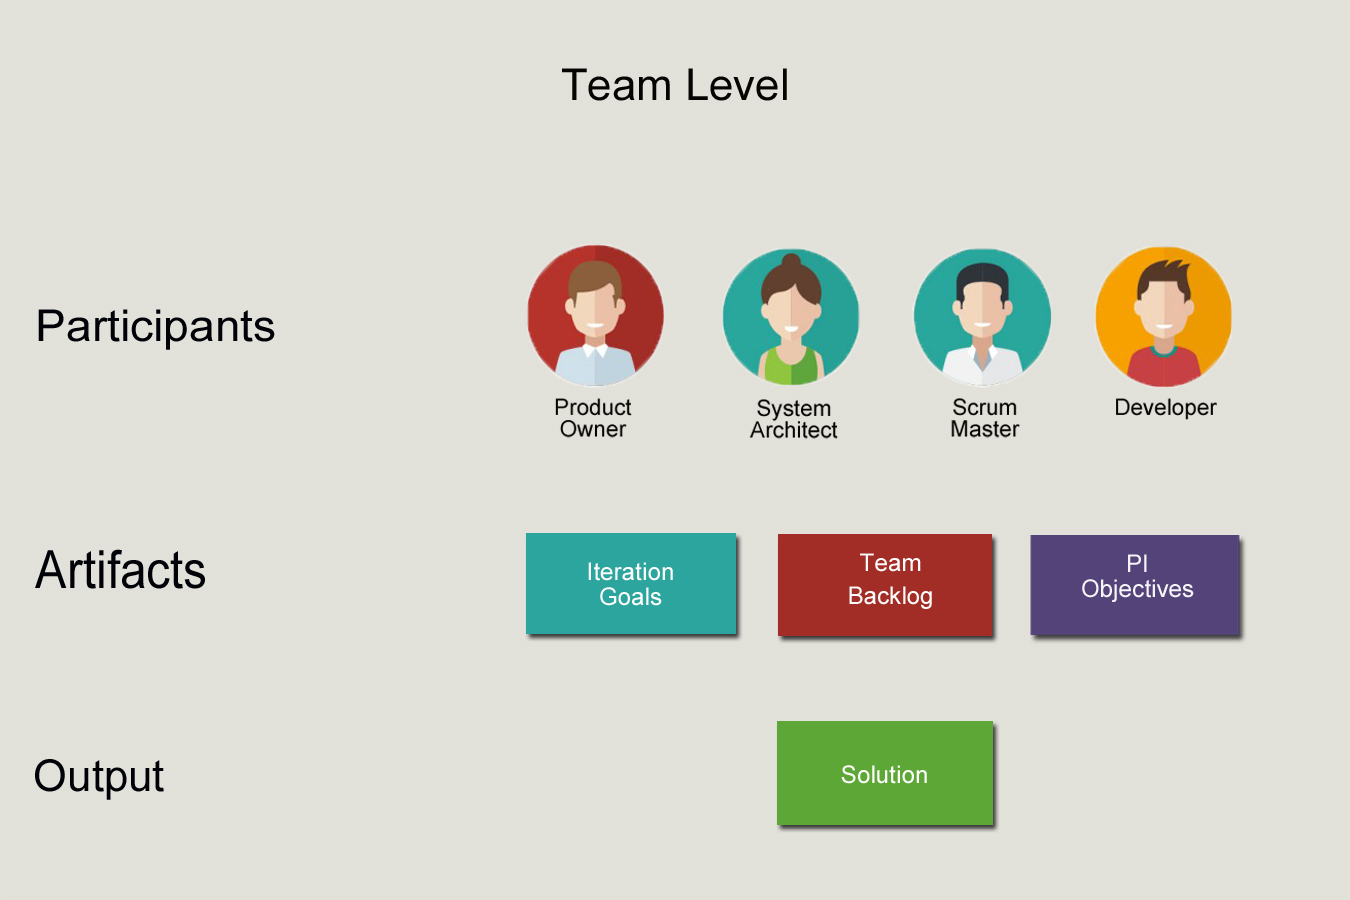 Team Level is the powerhouse for Agile Release Train